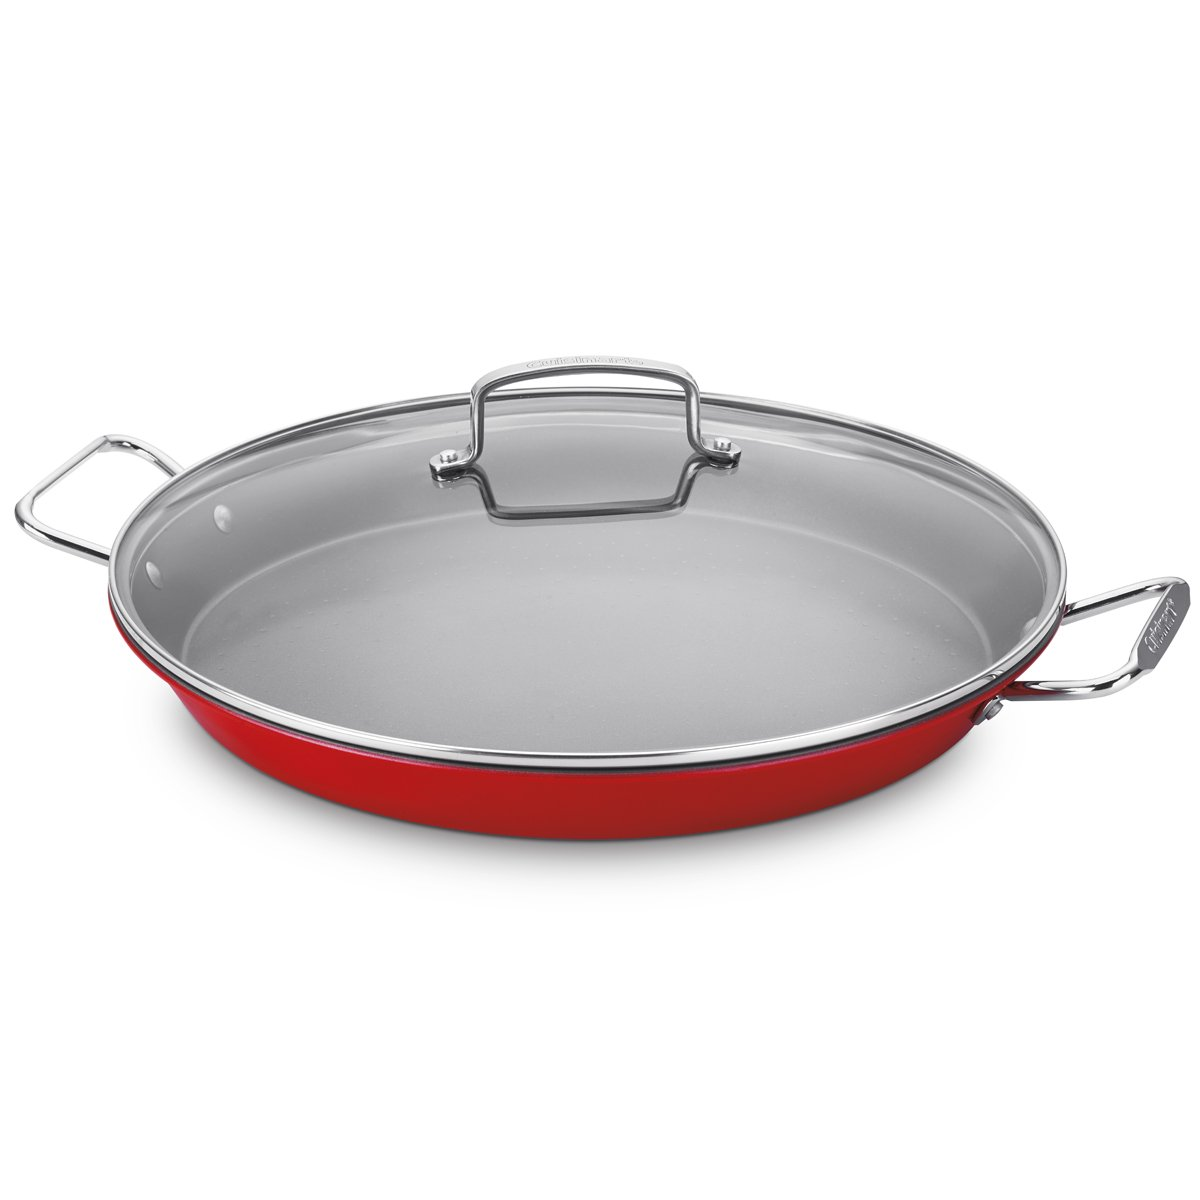 CUISINART Non-Stick Paella Pan, 15-Inch, Red ASP-38CR